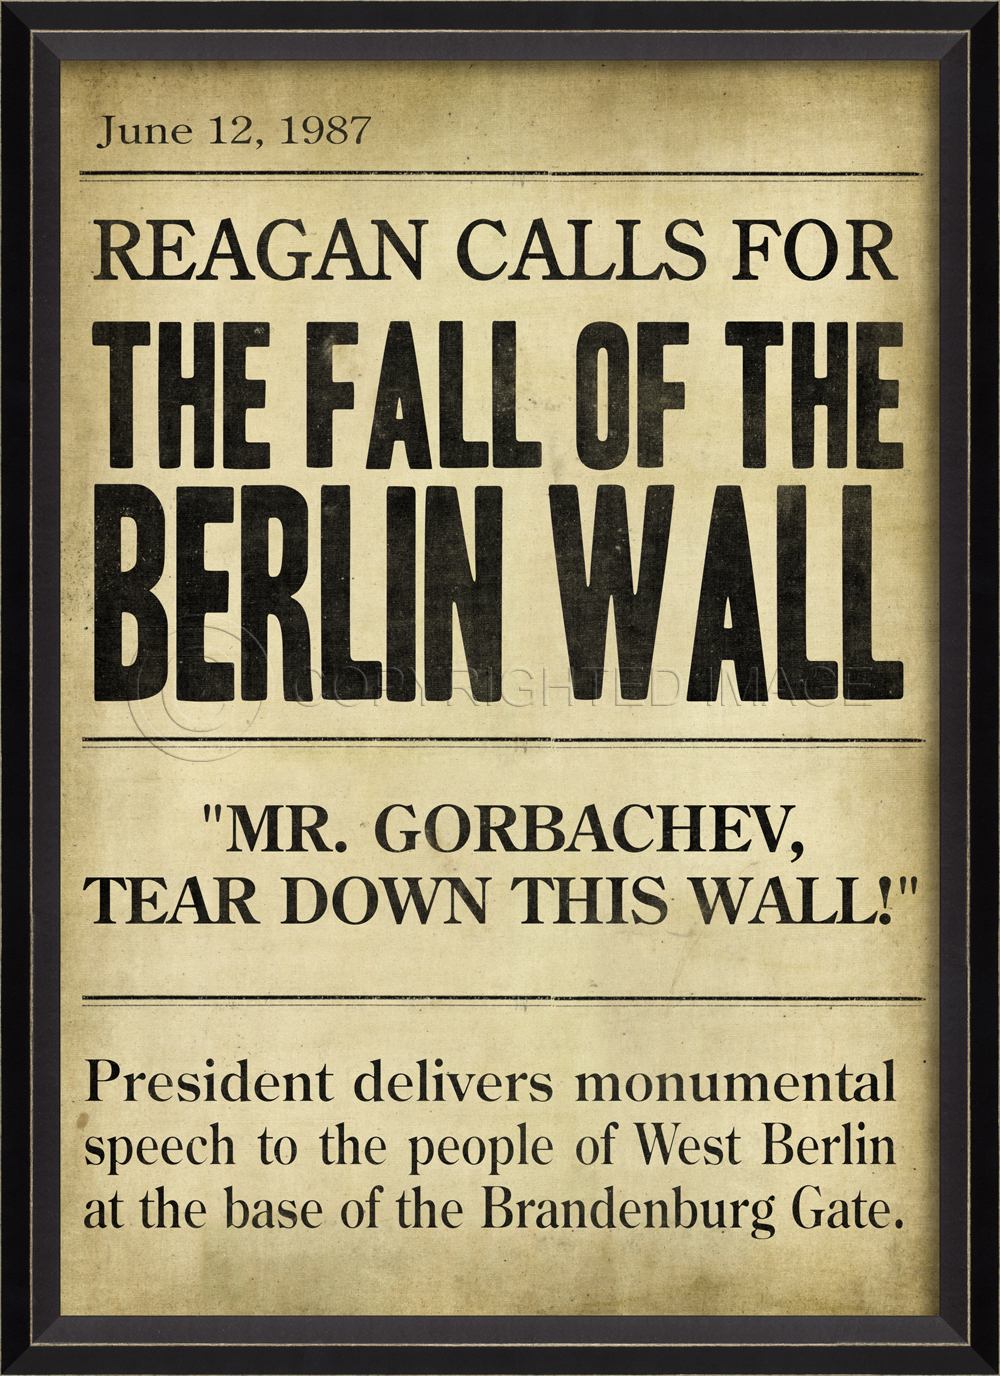 While Media Acknowledge the Fall of the Berlin Wall ...